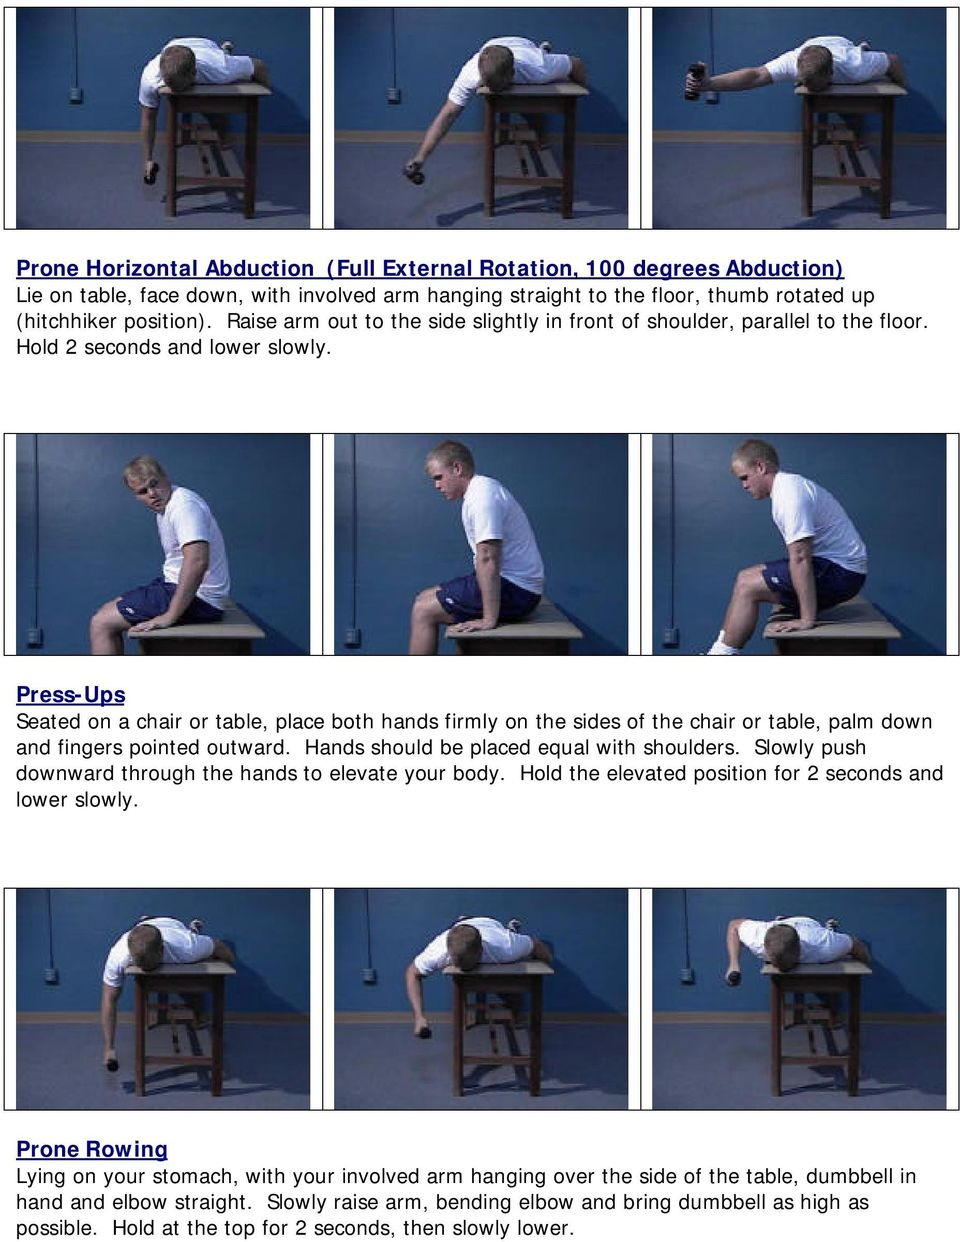 Press-Ups Seated on a chair or table, place both hands firmly on the sides of the chair or table, palm down and fingers pointed outward. Hands should be placed equal with shoulders.